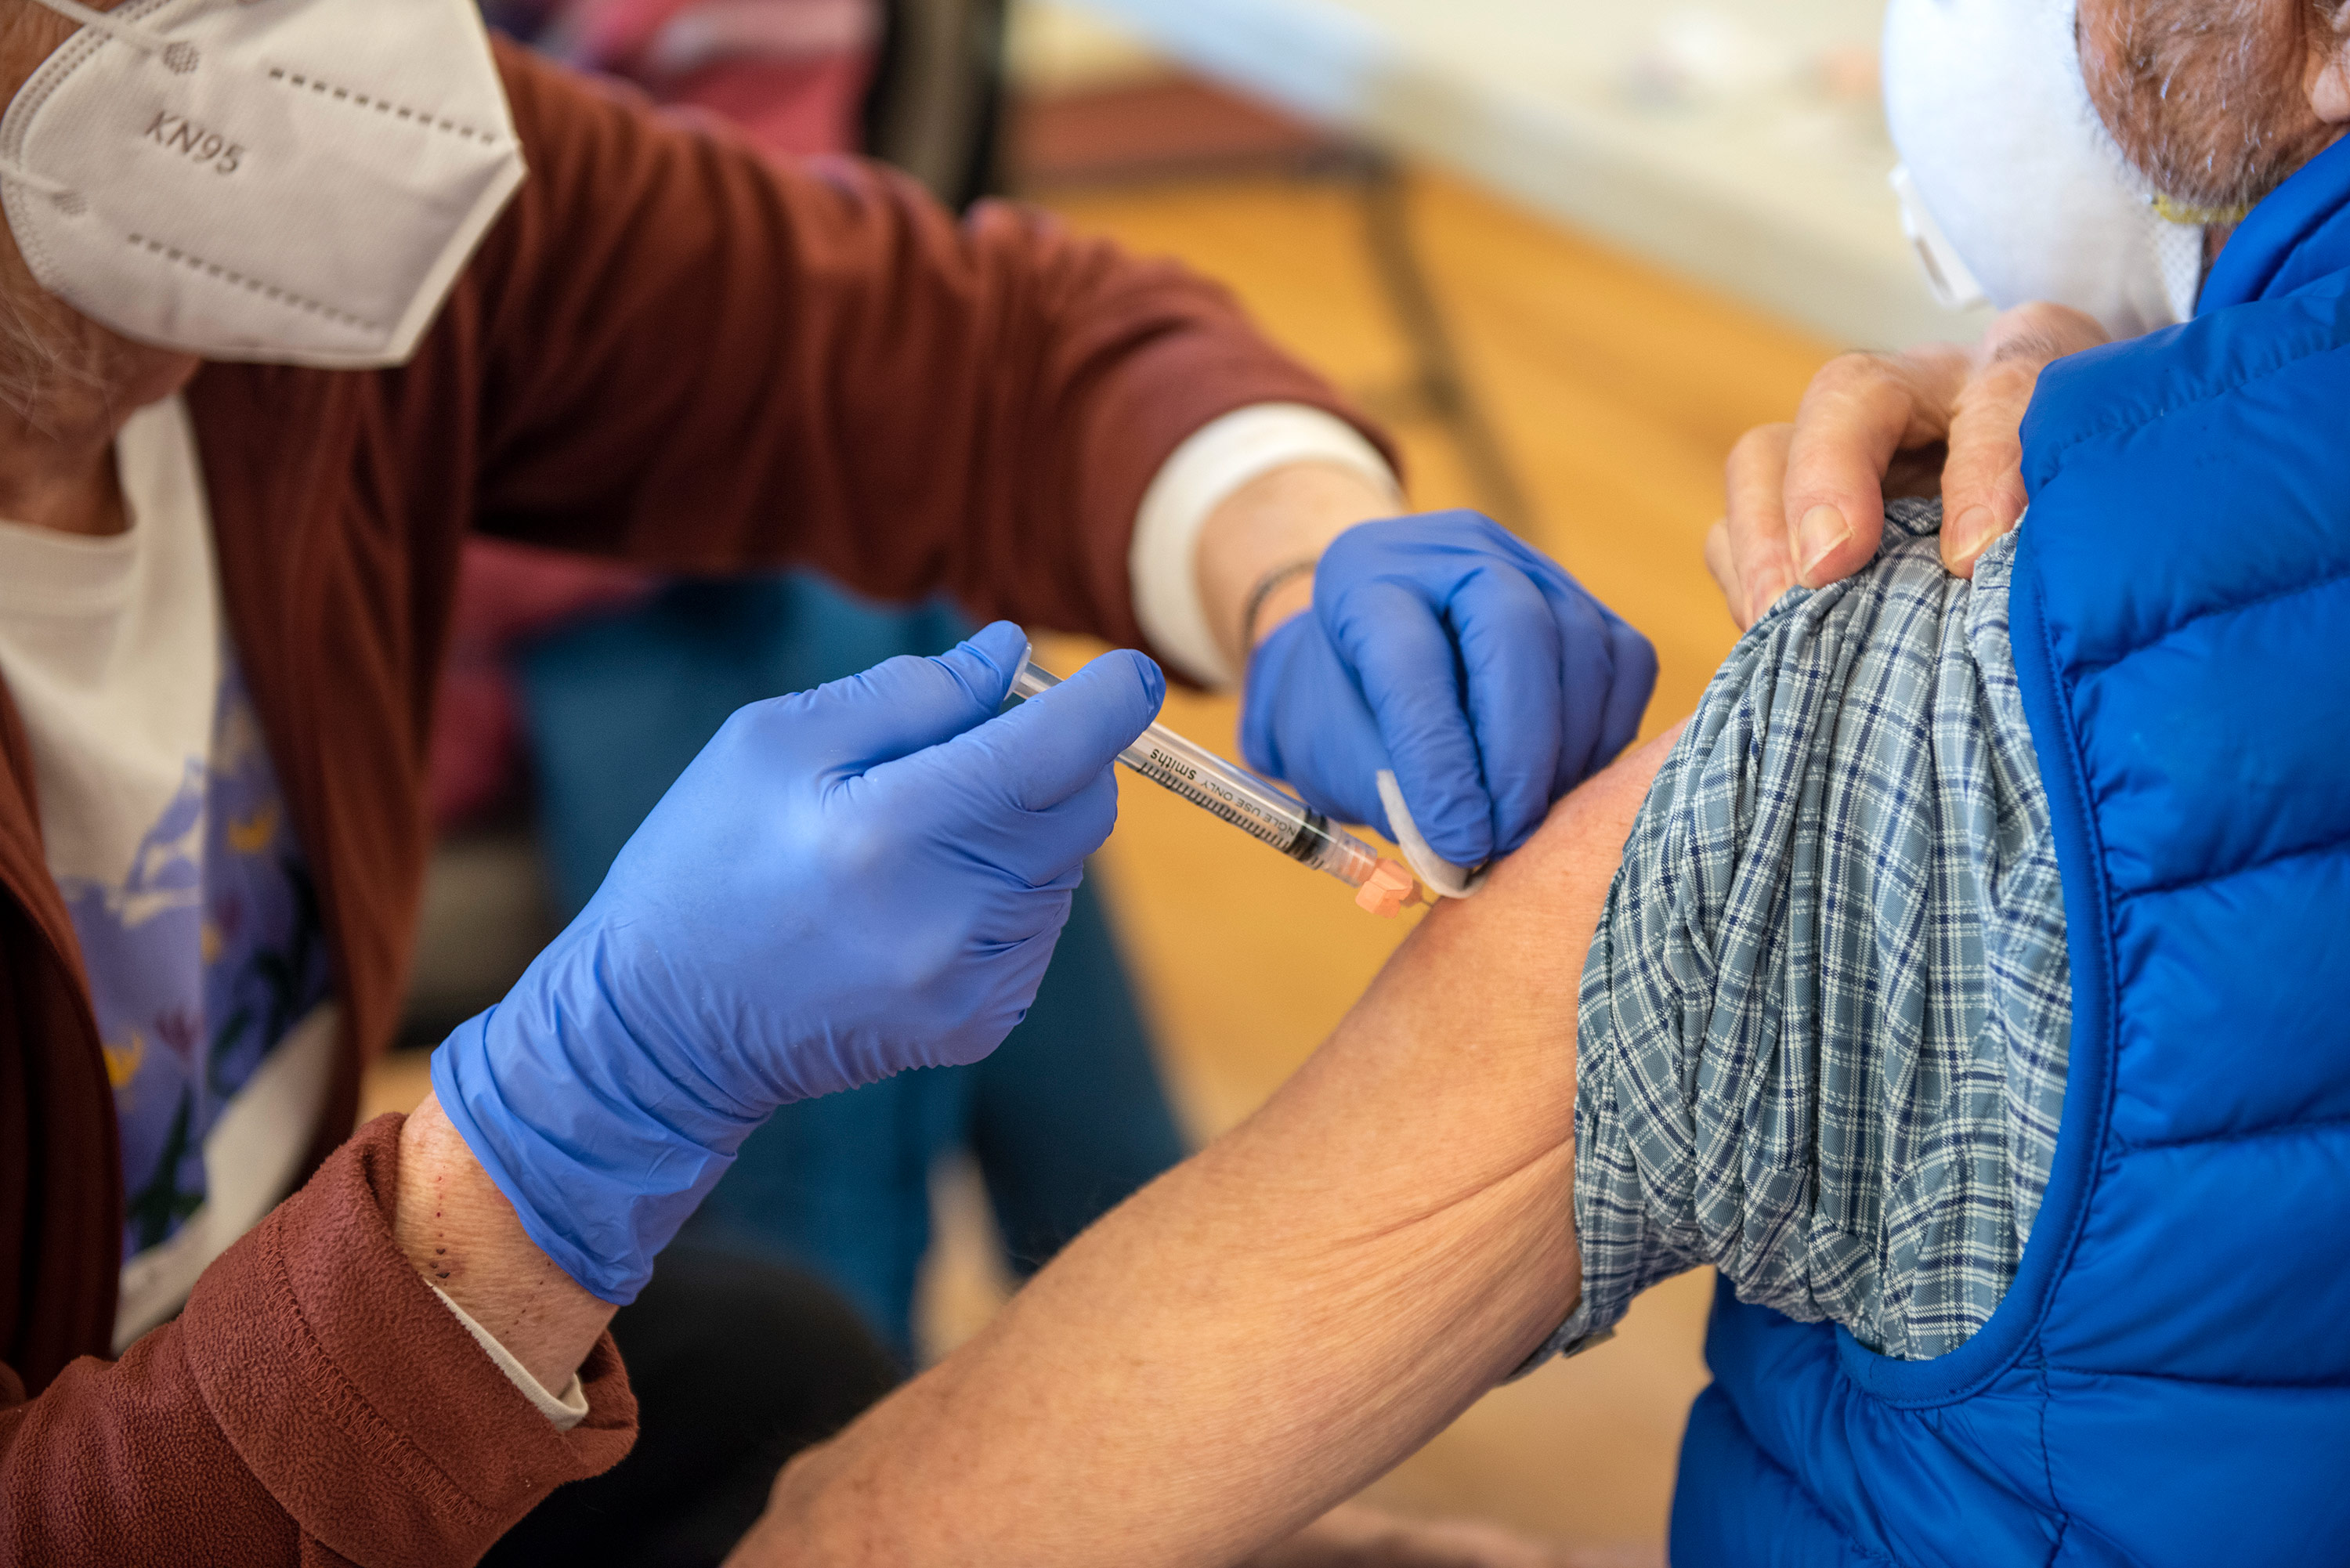 A nurse administers a Covid-19 vaccine to a patient at the Park County Health Department on January 28, in Livingston, Montana.